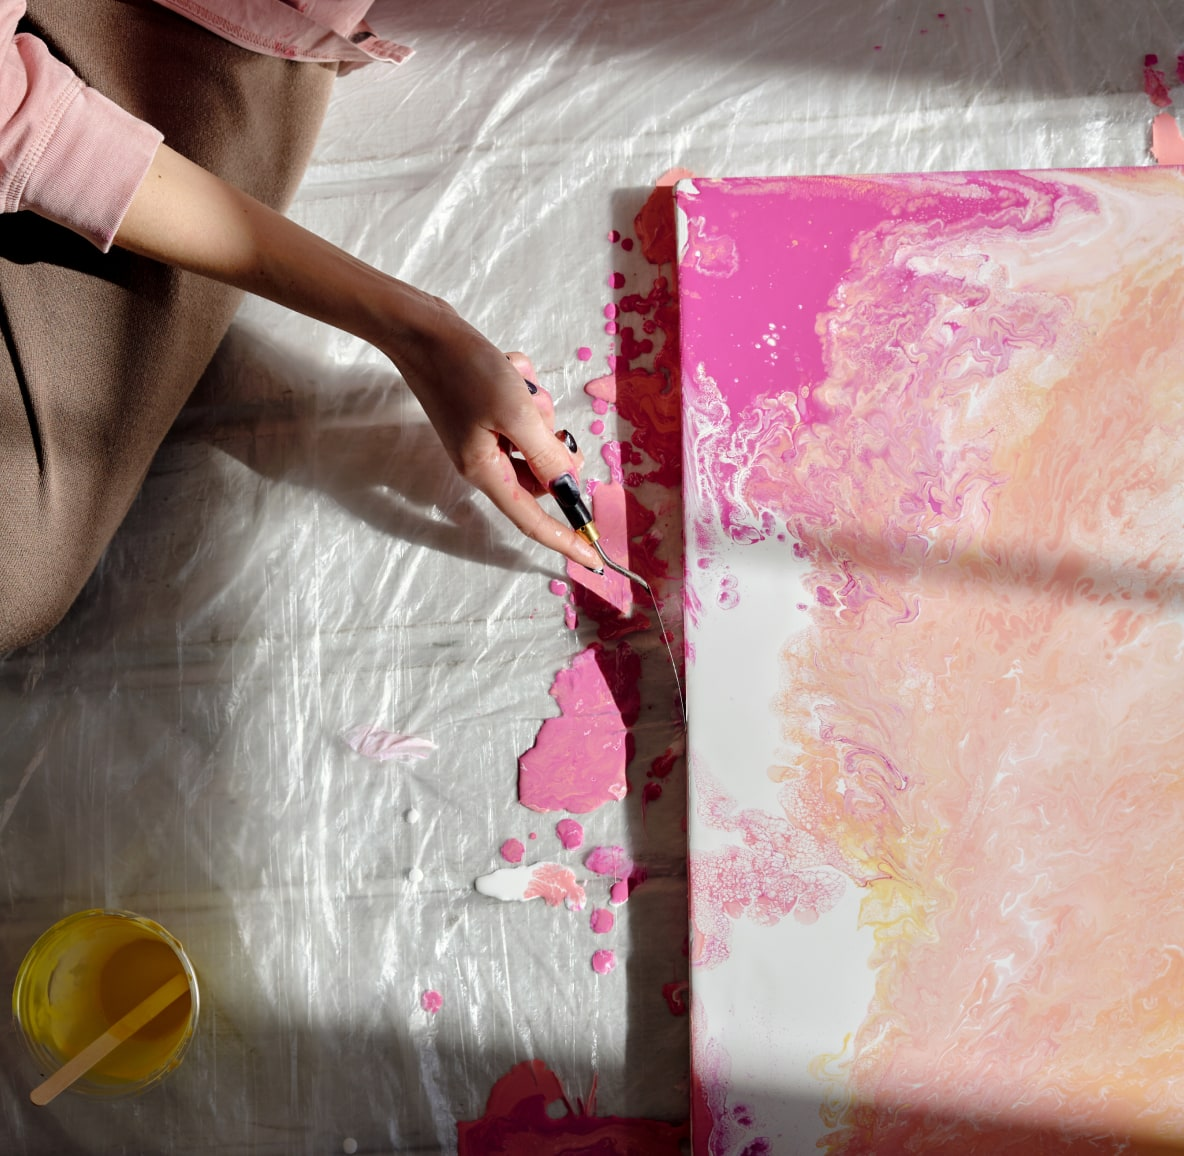 Woman's hand painting a canvas with pink and peach paint.